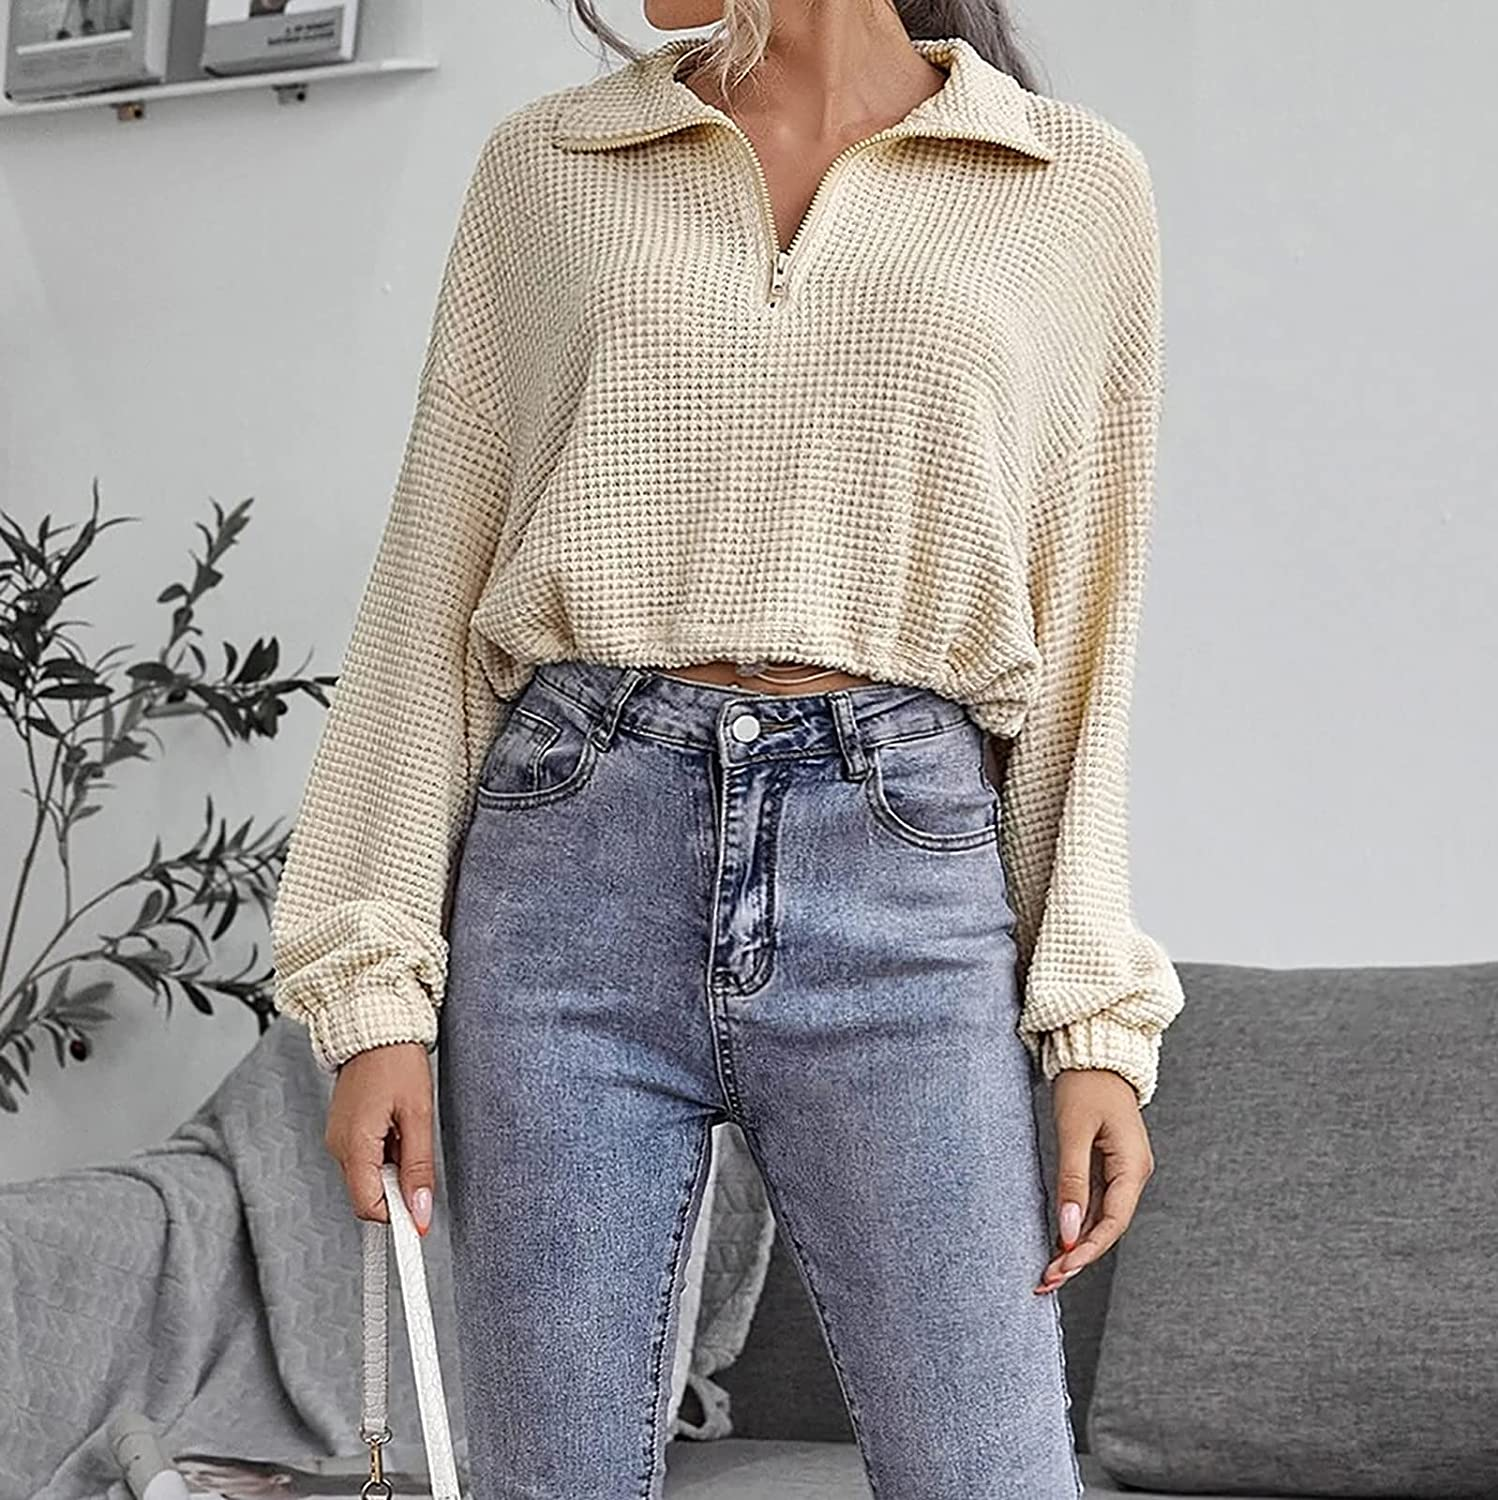 Crop Tops for Women Fashion Short Sweater Cardigan V-Neck Zipper Lapel Long Sleeve Knitted Pullover